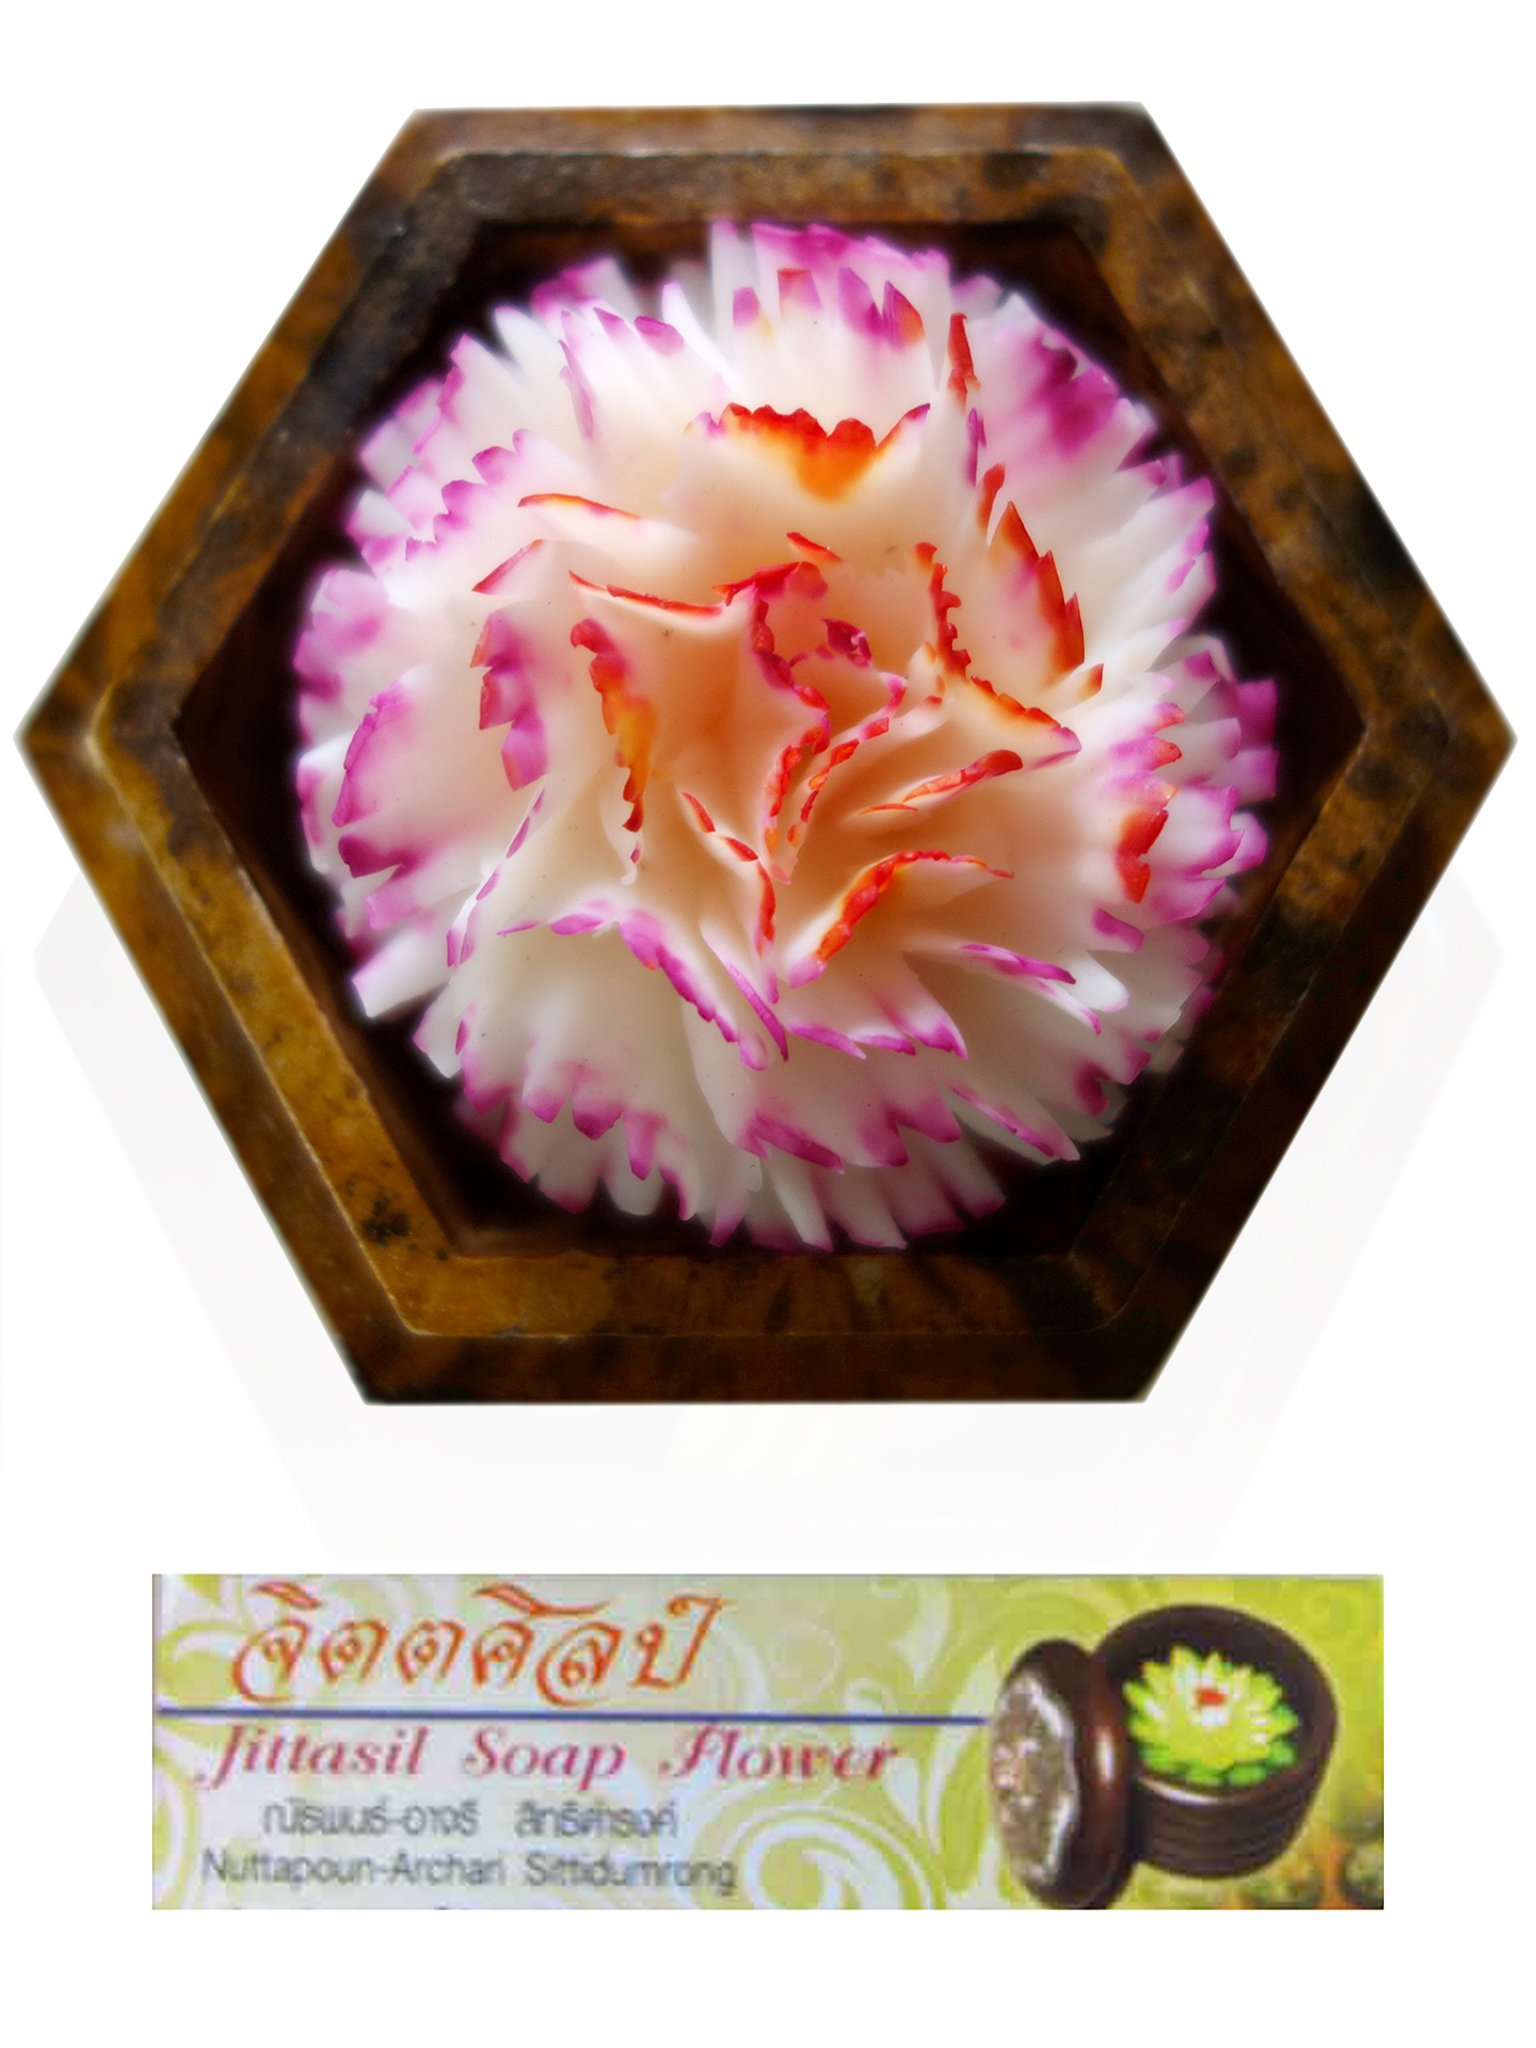 Jittasil Thai Hand-Carved Soap Flower, 4 Inch Scented Soap Carving Gift-Set, White Carnation In Decorative Hexagonal Pine Wood Case